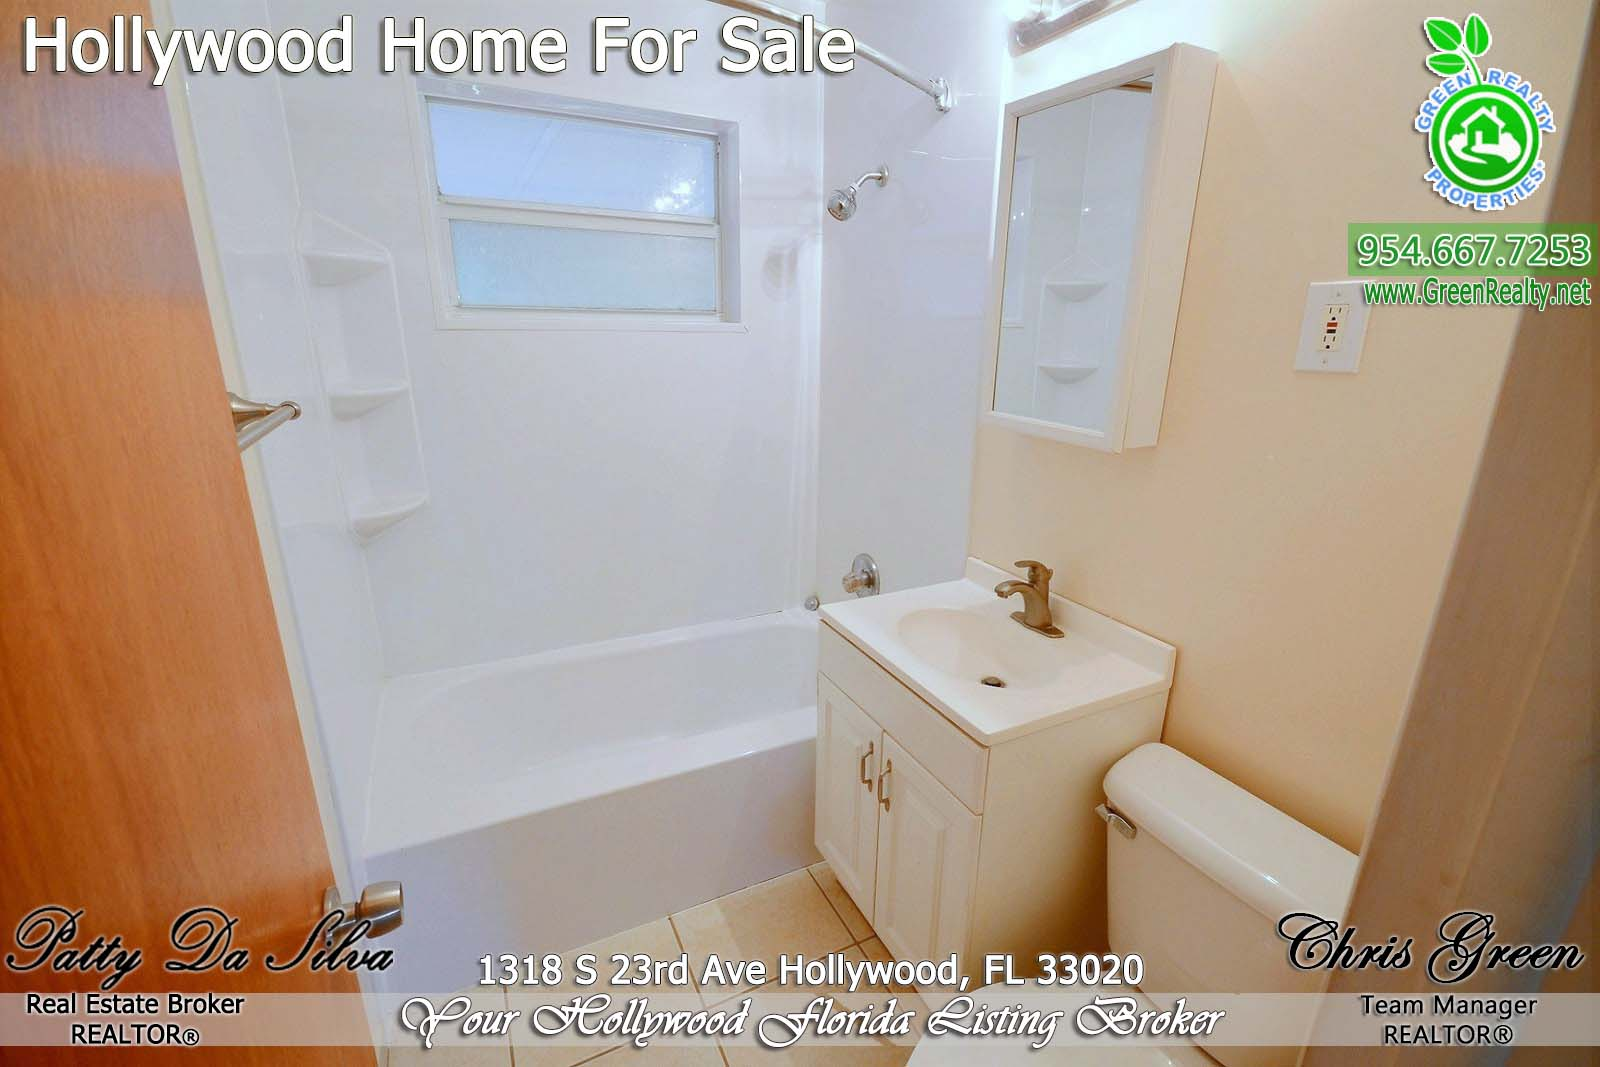 18 Hollywood Florida Homes For Sale (17)